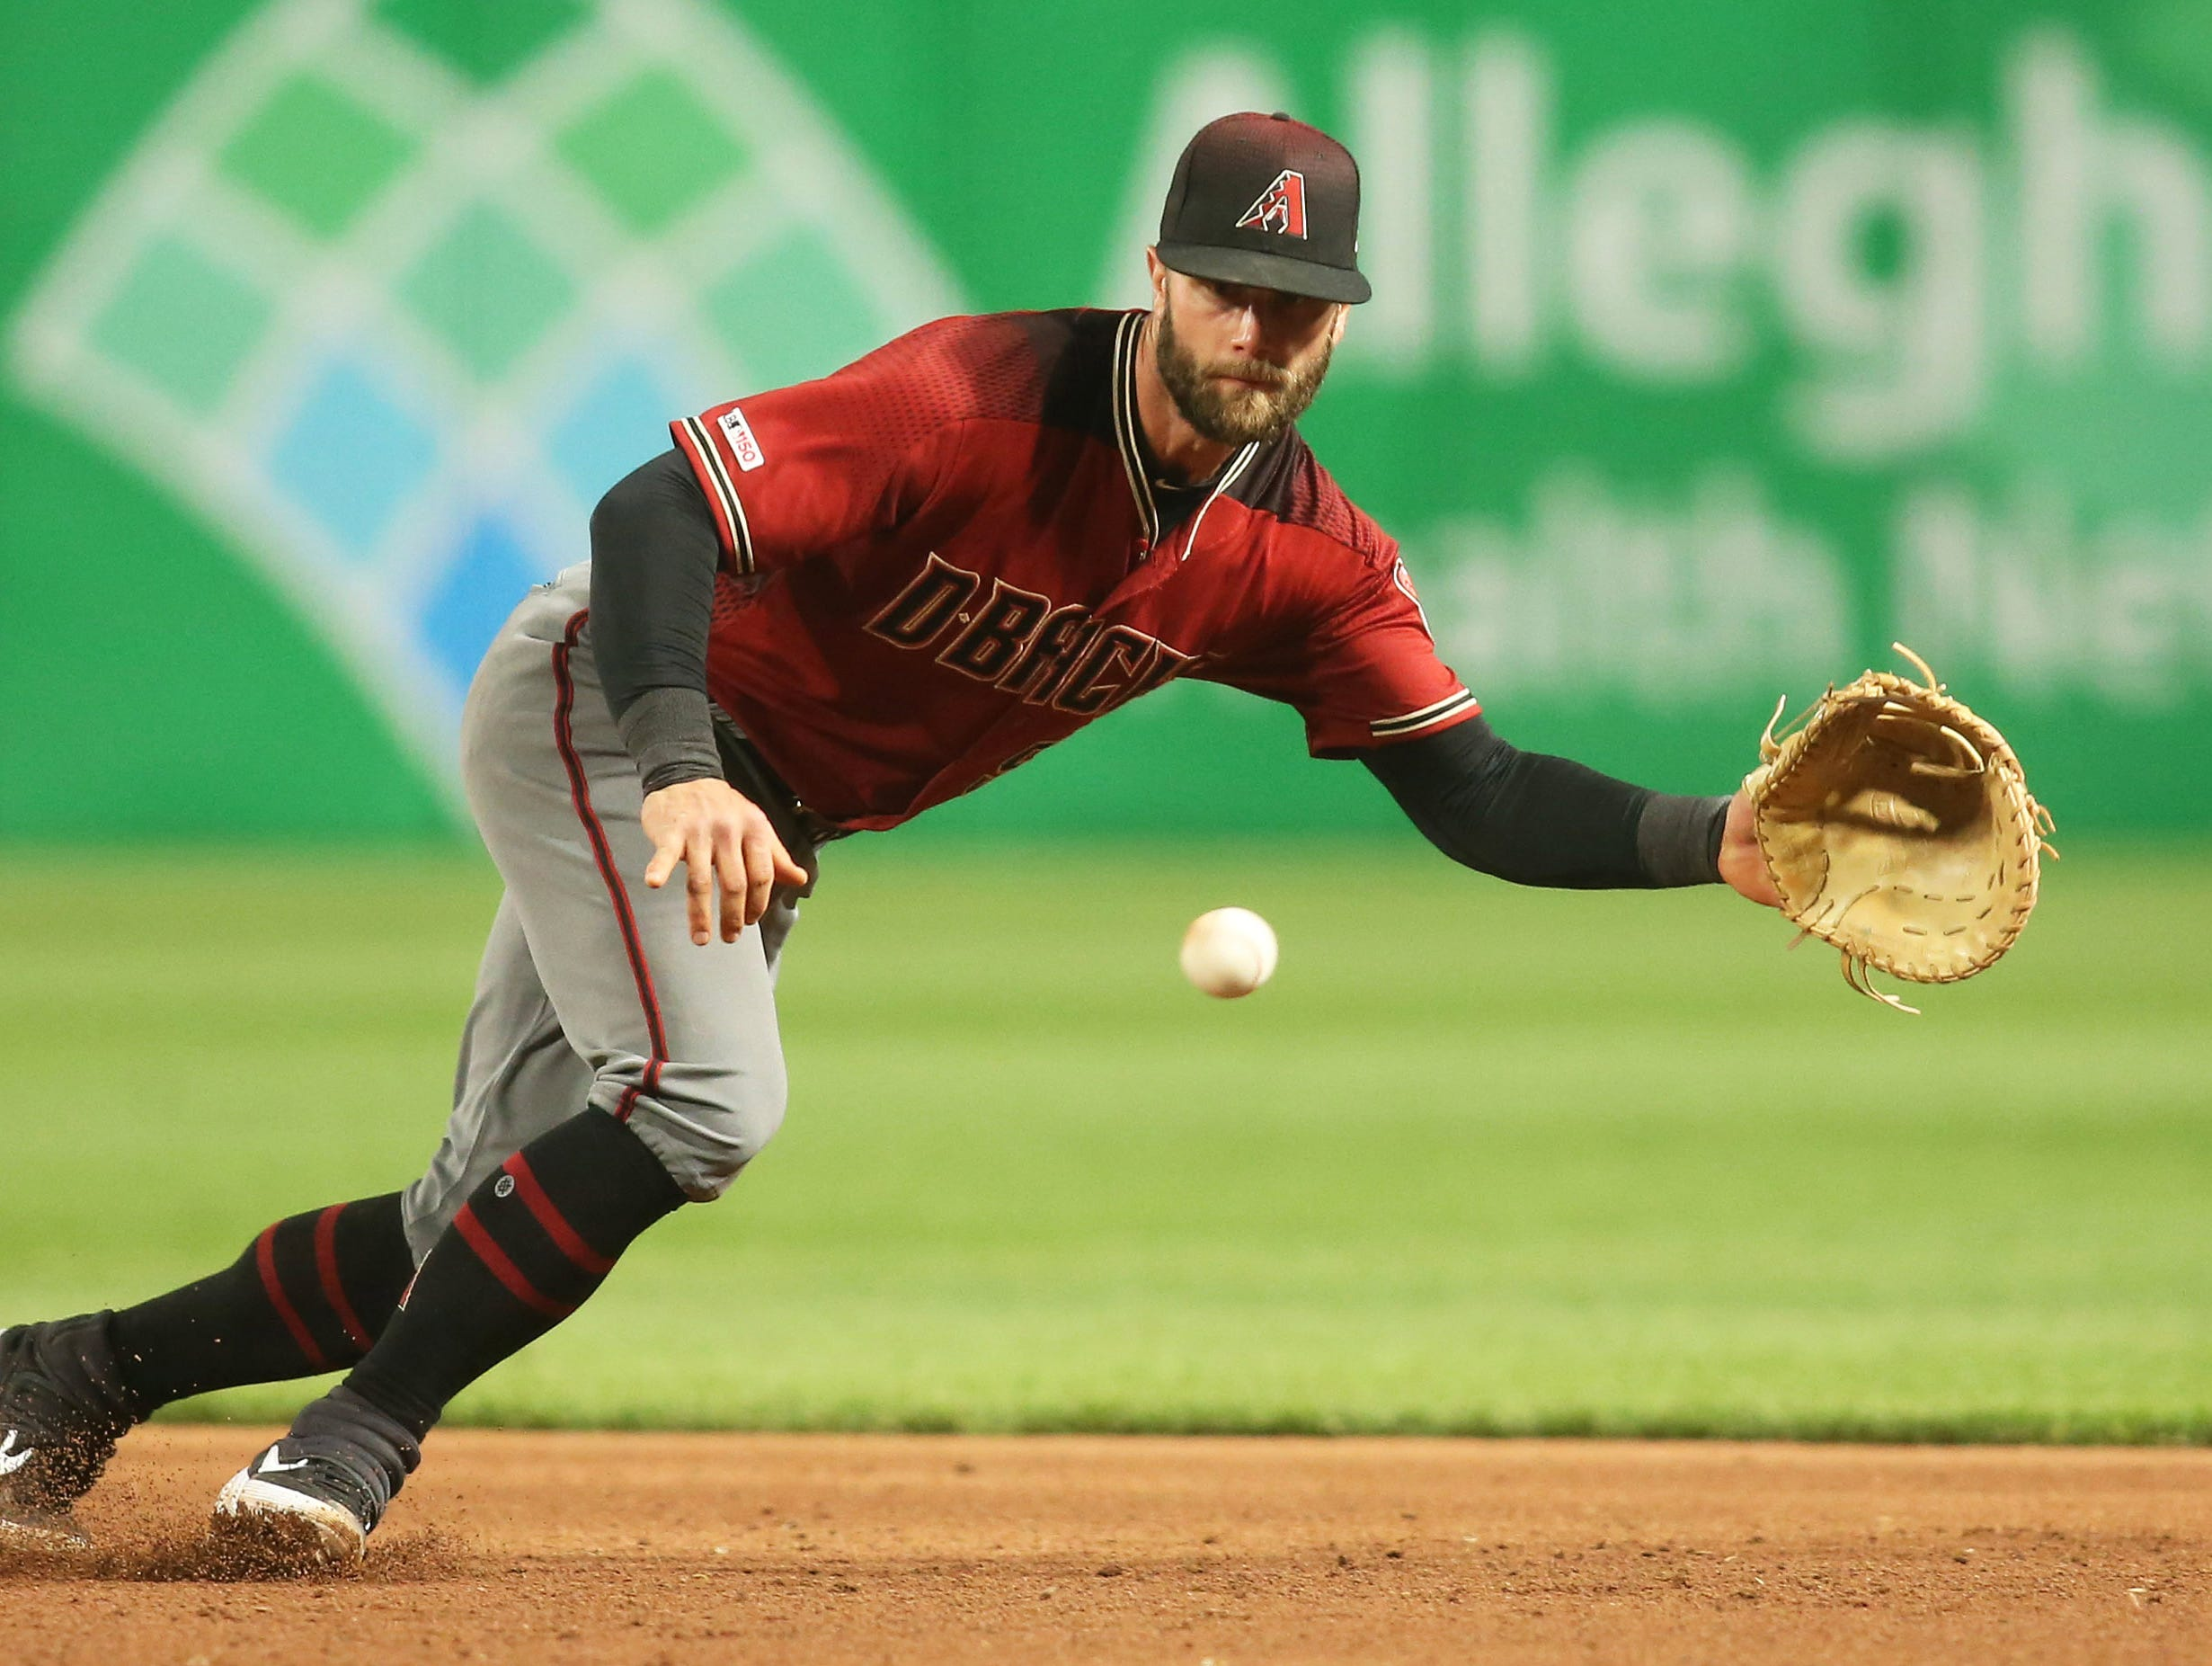 Apr 24, 2019; Pittsburgh, PA, USA;  Arizona Diamondbacks first baseman Christian Walker (53) fields a ground ball against the Pittsburgh Pirates during the ninth inning at PNC Park. Mandatory Credit: Charles LeClaire-USA TODAY Sports